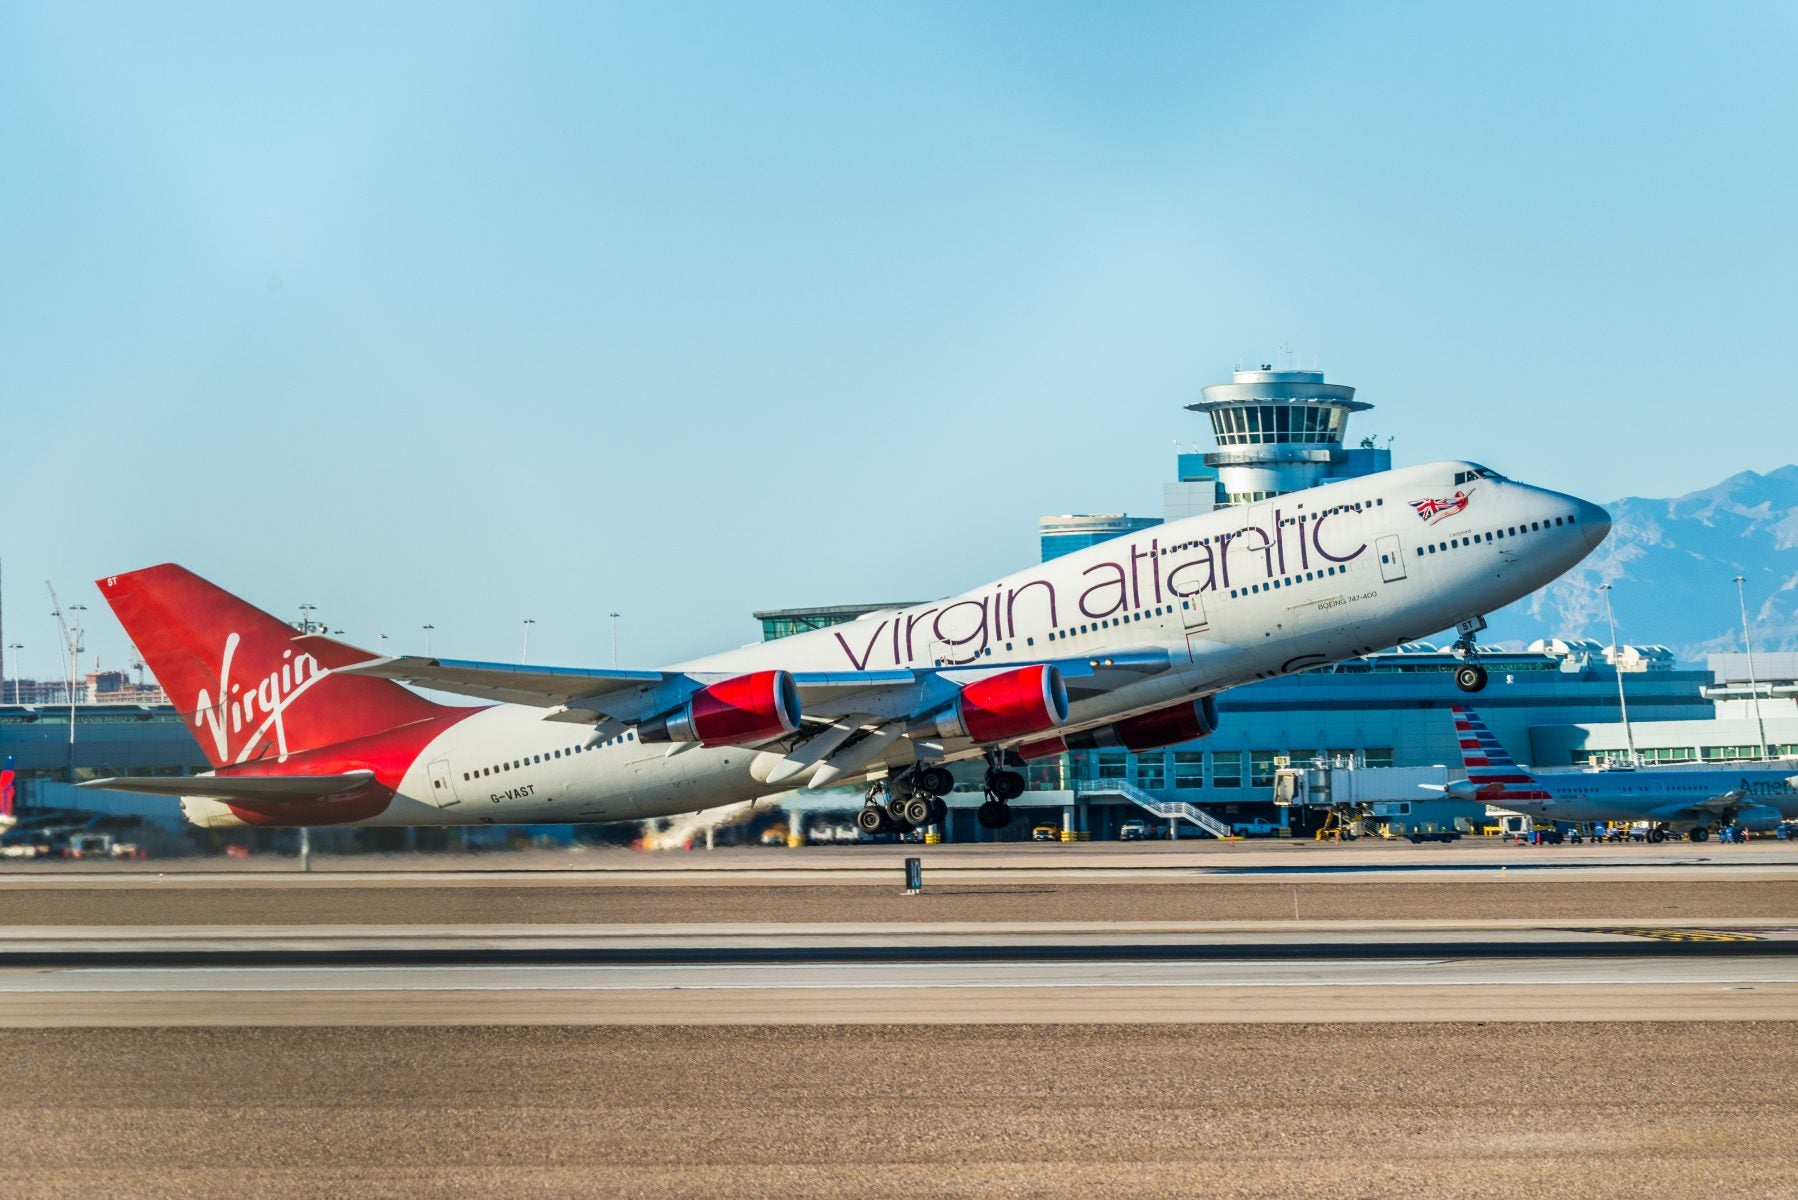 6 reasons you shouldn't overlook the Virgin Atlantic credit card